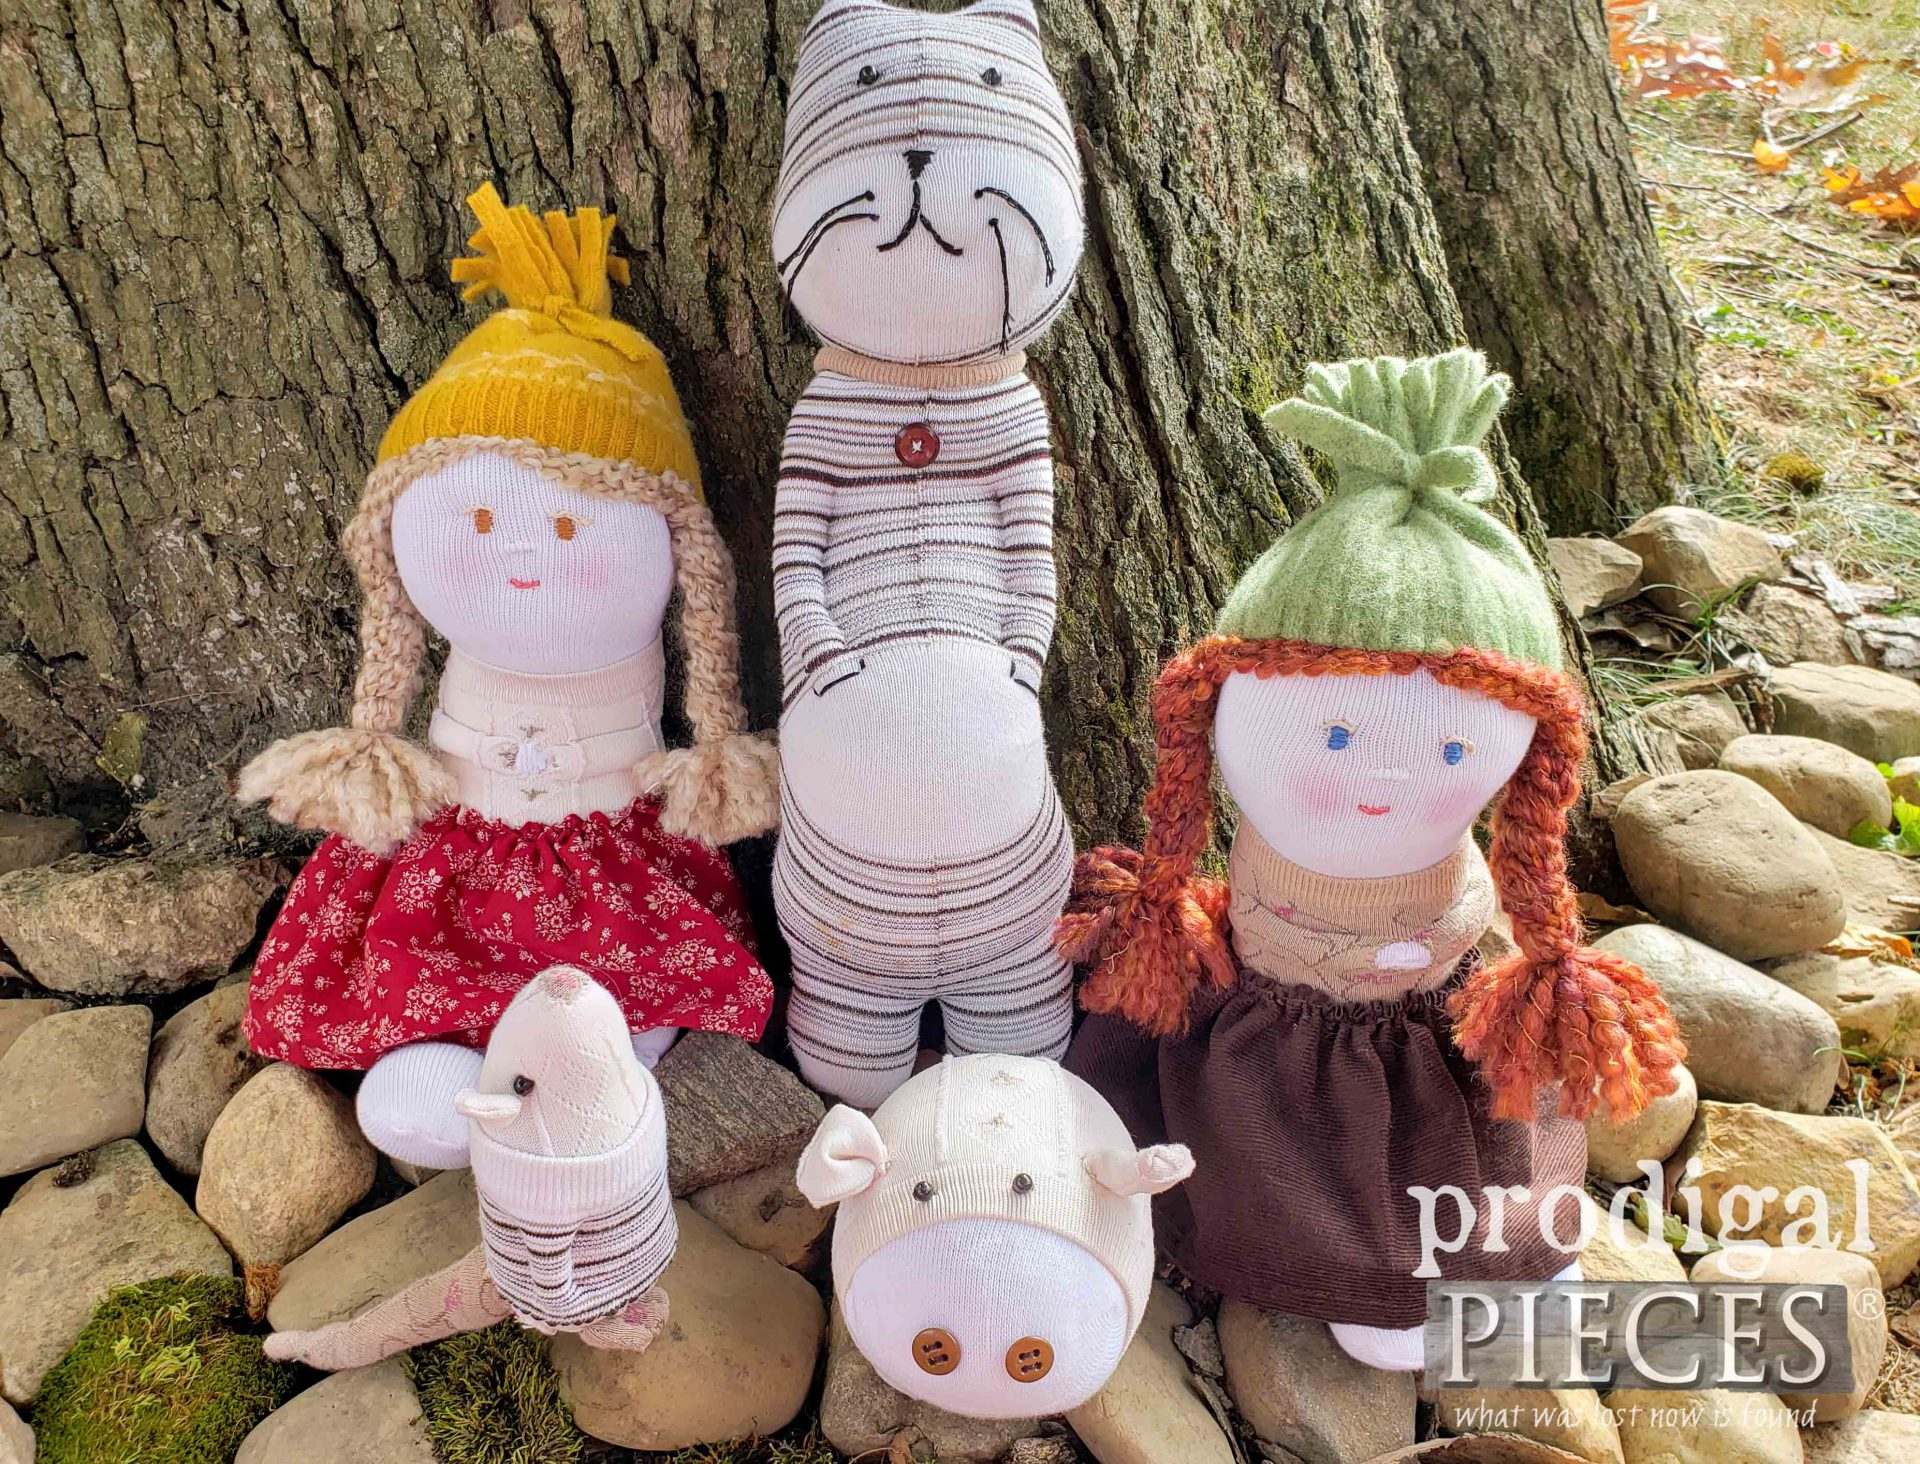 Family of Upcycled Sock Dolls & Animals Handmade by Larissa of Prodigal Pieces | prodigalpieces.com #prodigalpieces #handmade #toys #kids #sewing #crafts